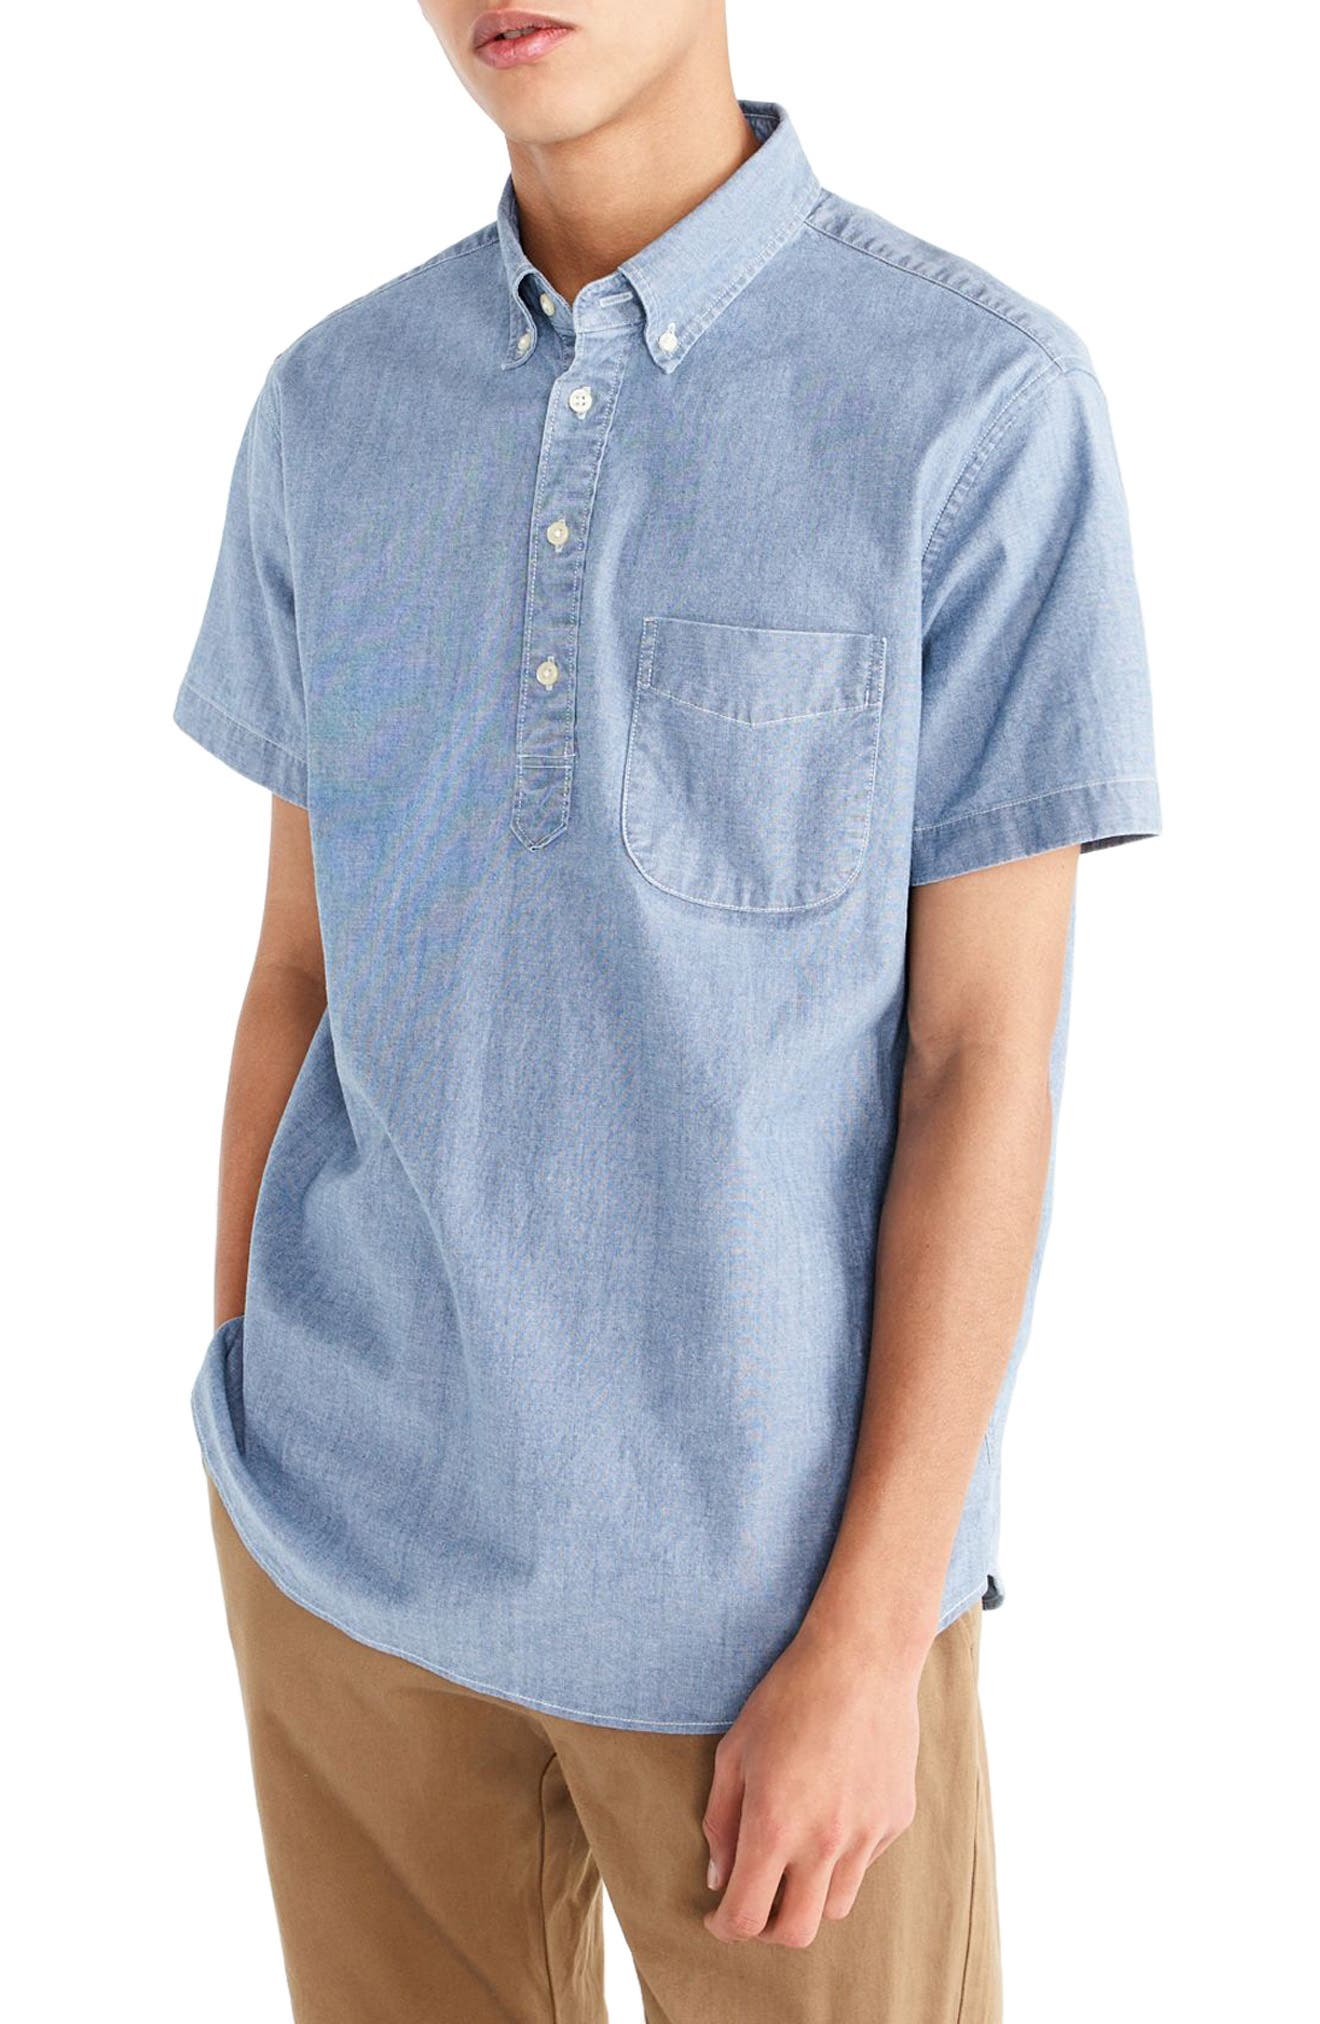 J.Crew Short Sleeve Stretch Chambray Popover Shirt,                         Main,                         color, Indigo